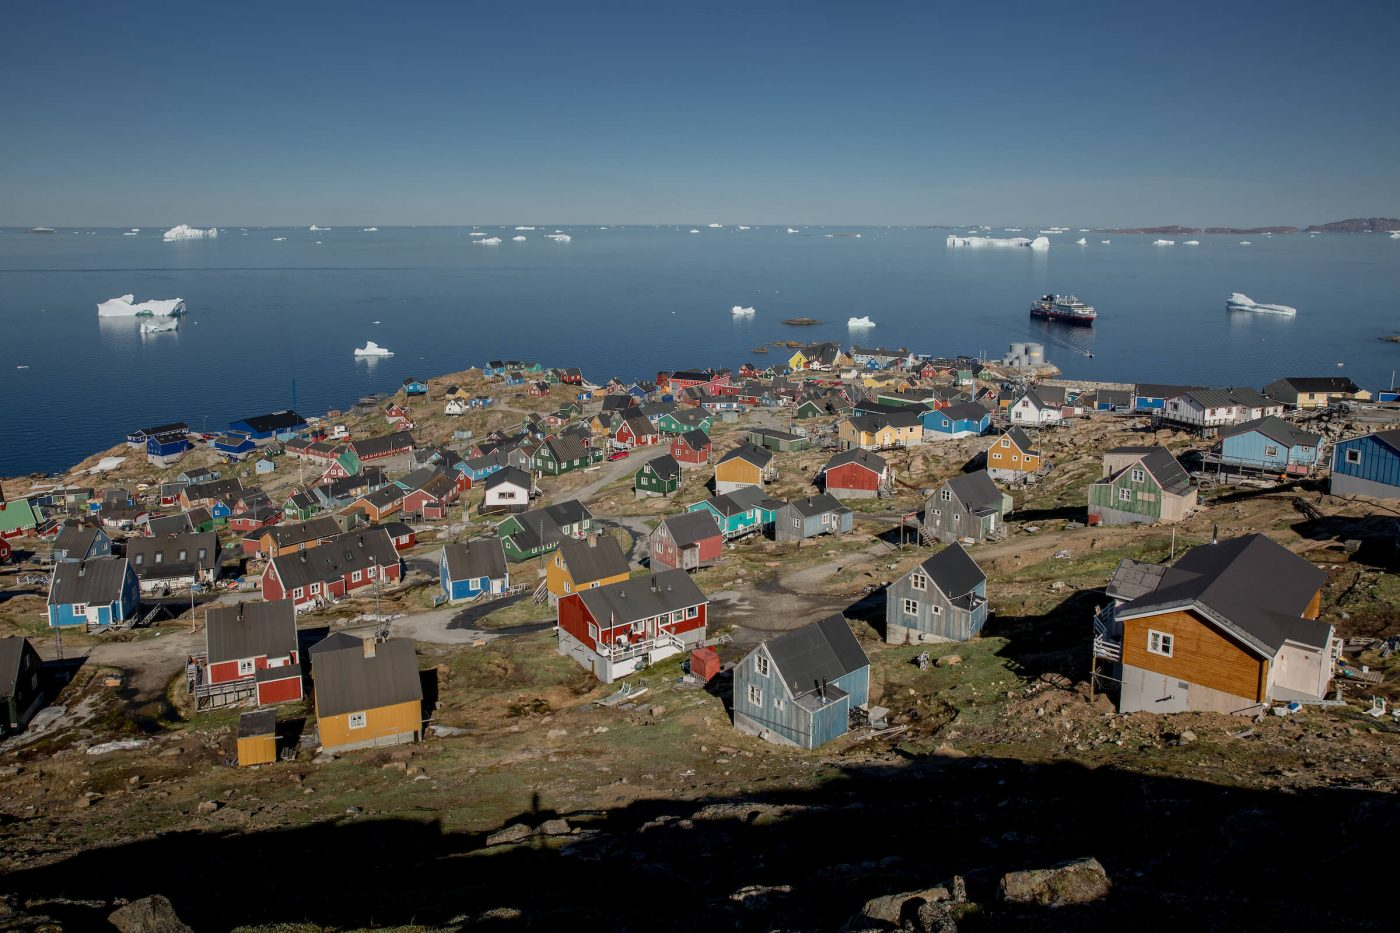 Upernavik is the largest town in North Greenland